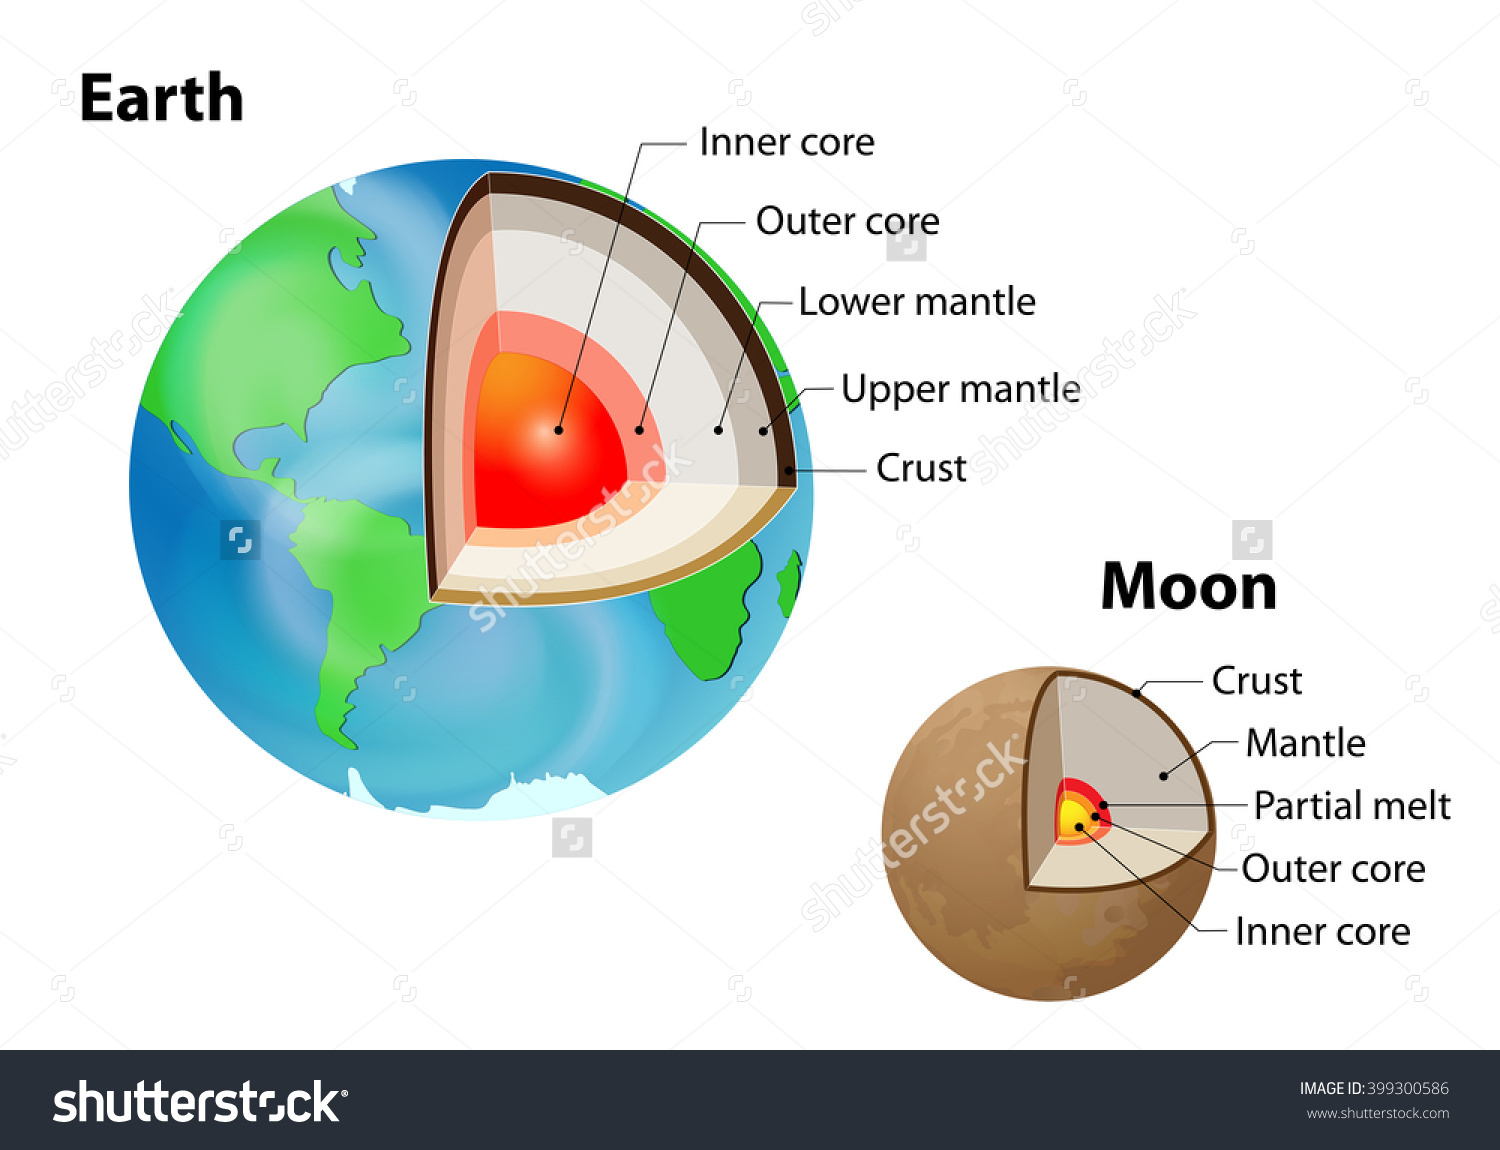 Layered Earth Moon Crust Upper Mantle Stock Vector 399300586.